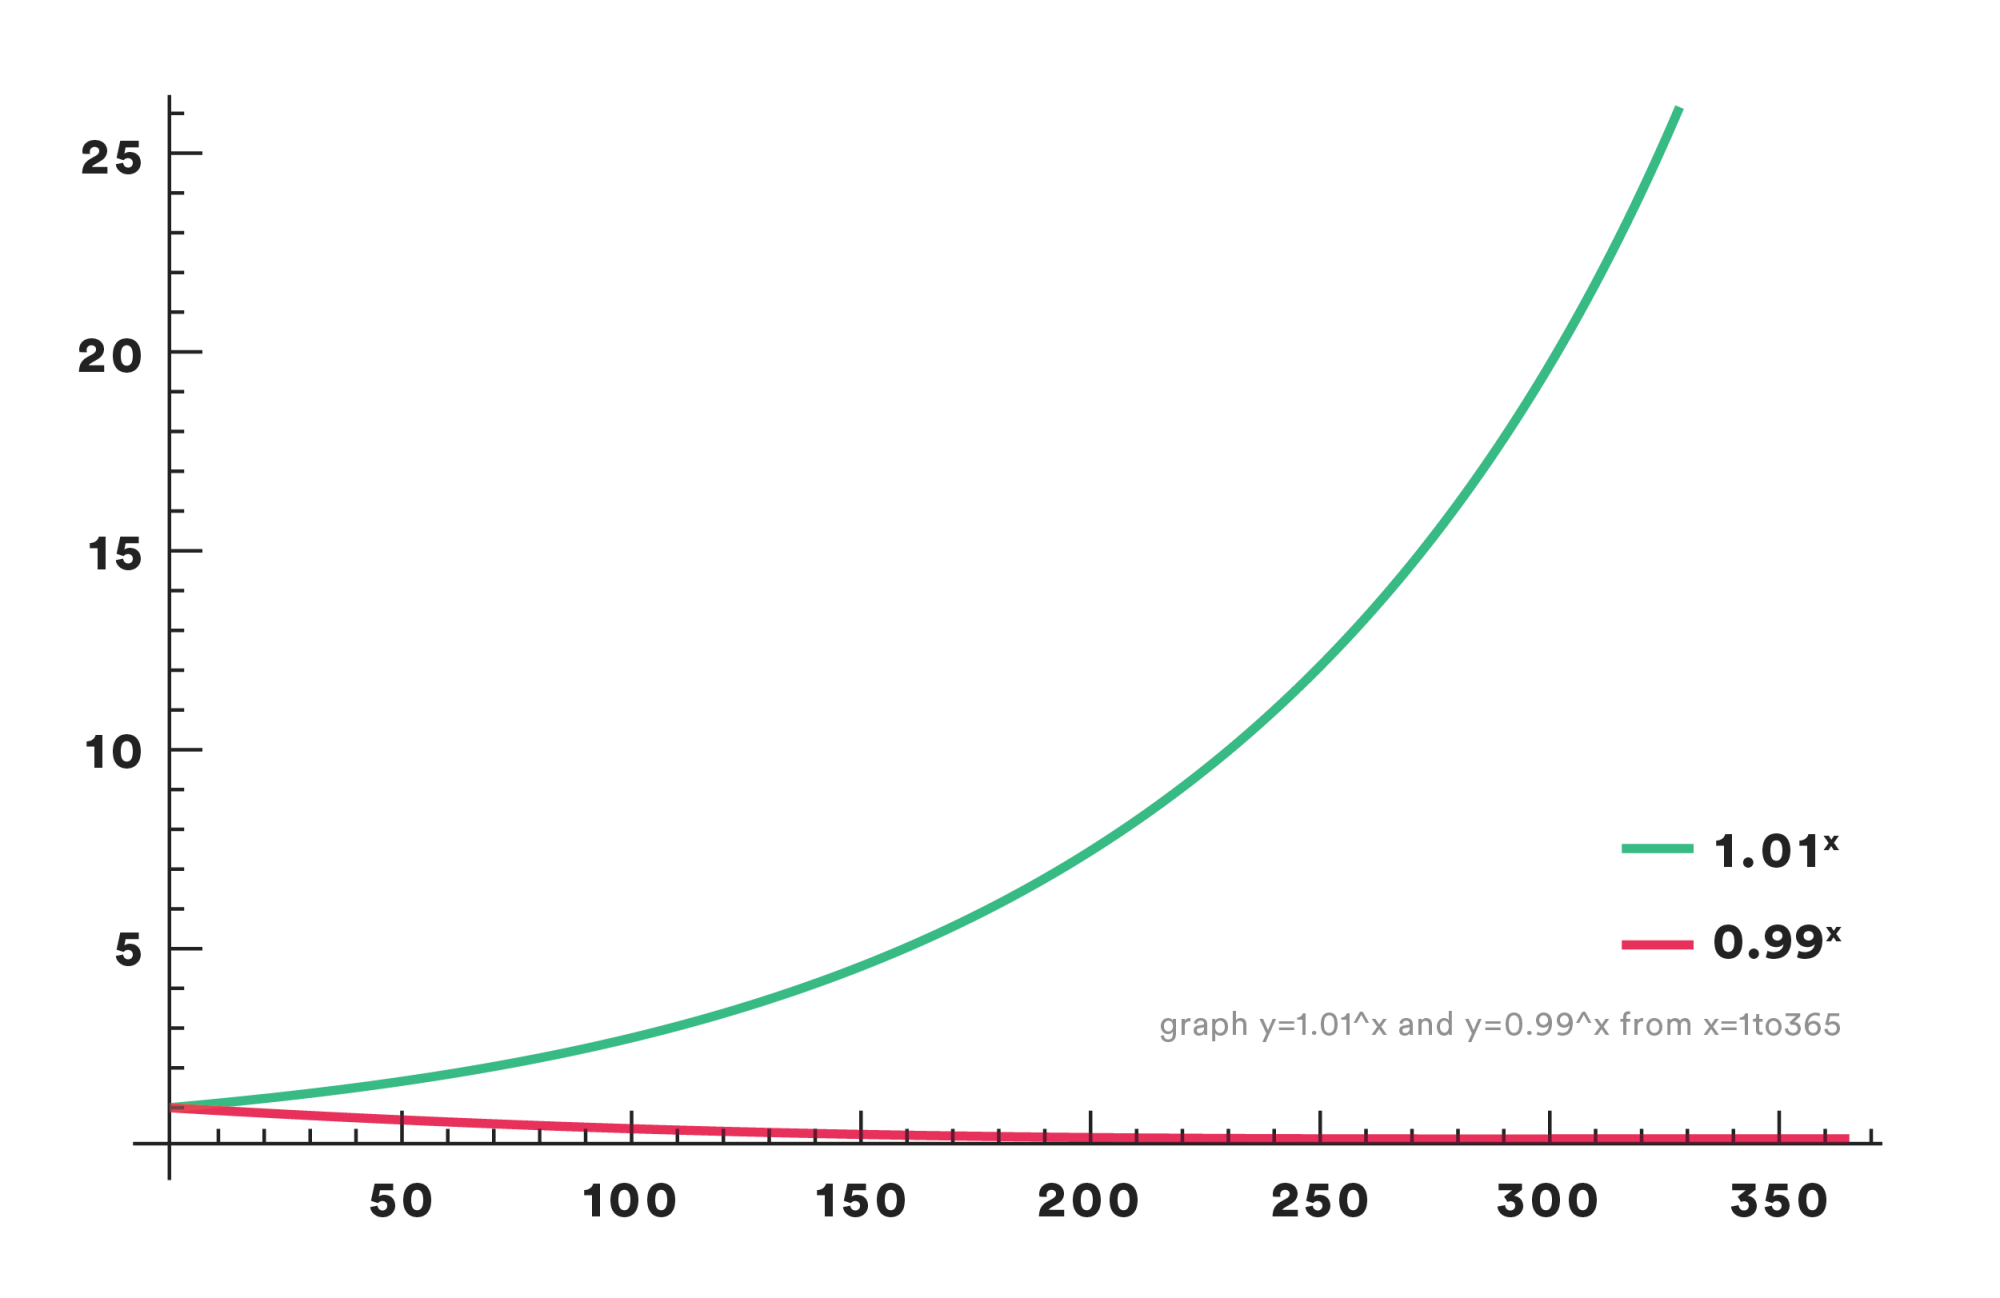 Graph showing the cumulative difference of small changes over time, both positive and negative.